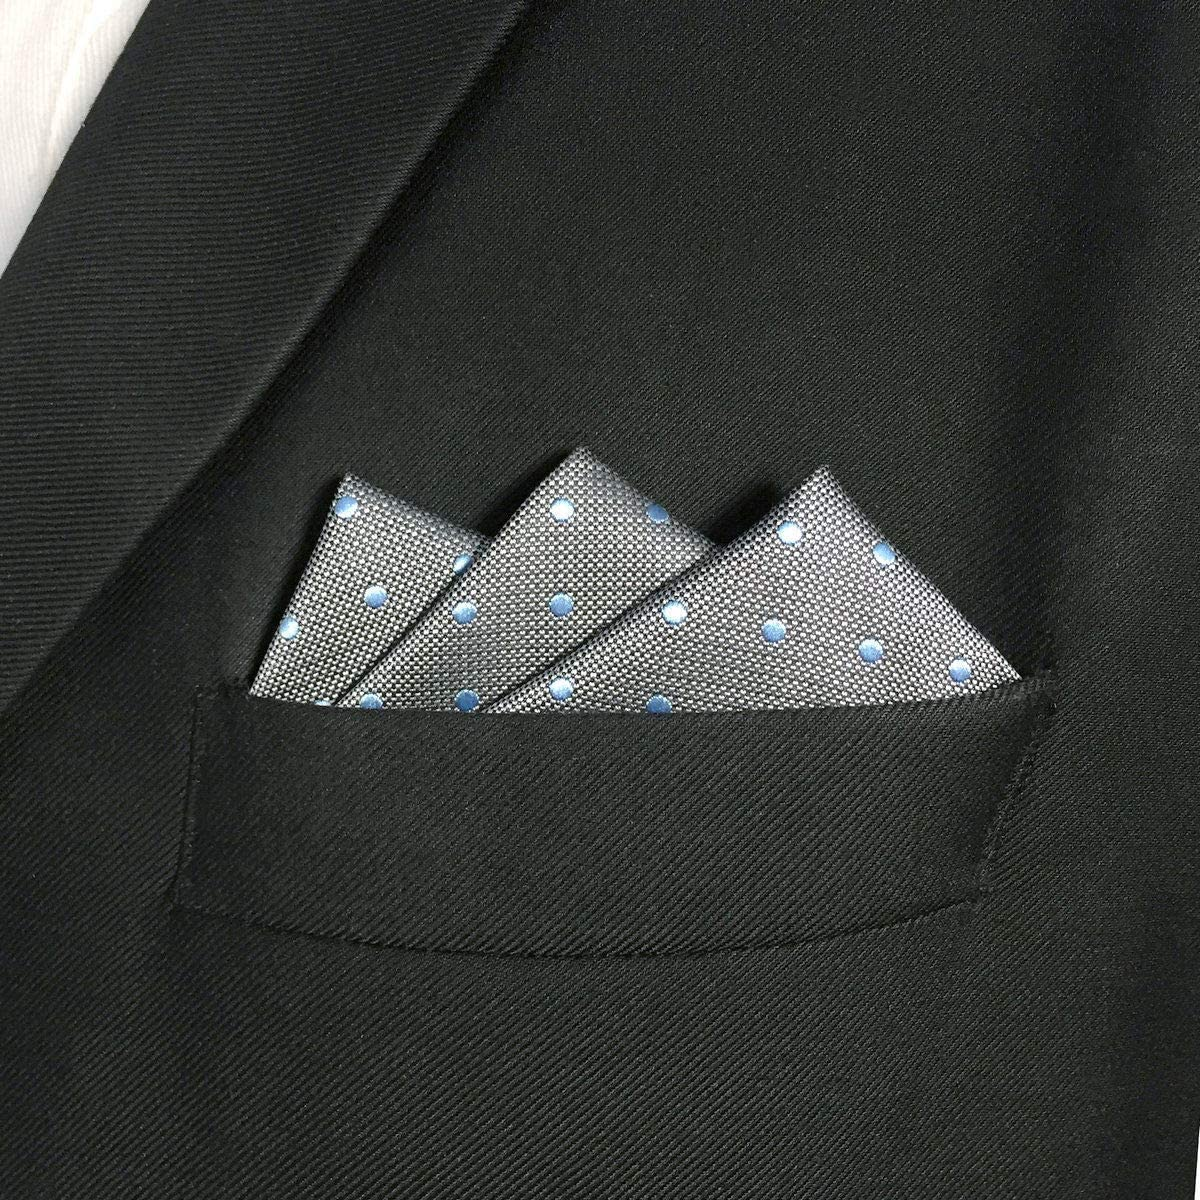 SHLAX/&WING Grey Blue Dots Mens Pocket Square Silk Large Hanky For Business